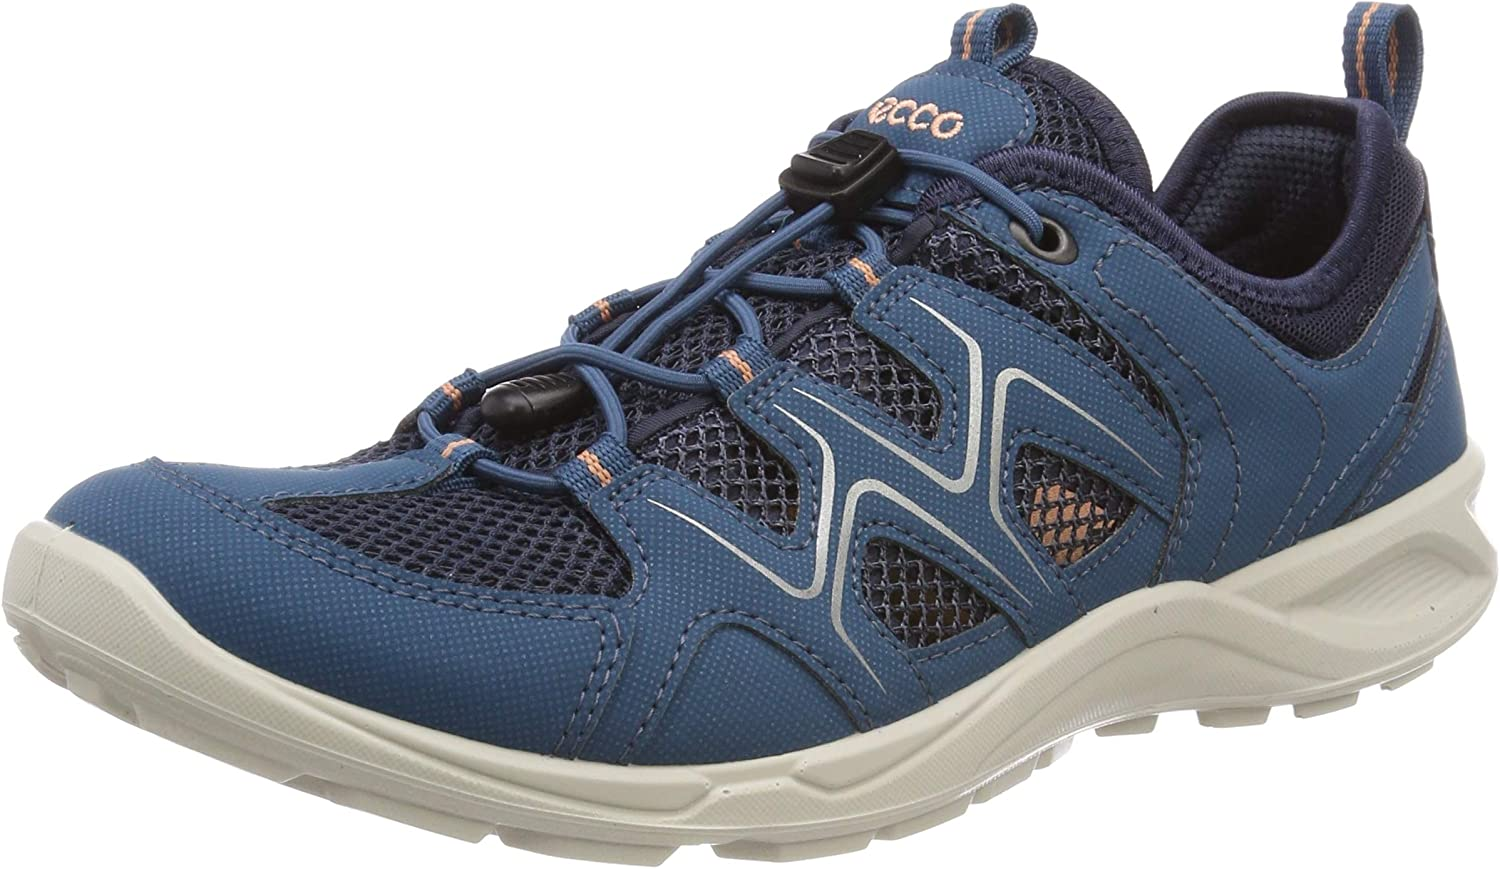 ECCO Women's Low Rise Hiking Shoes 再再販 安売り Cla Indian Marine Muted Teal